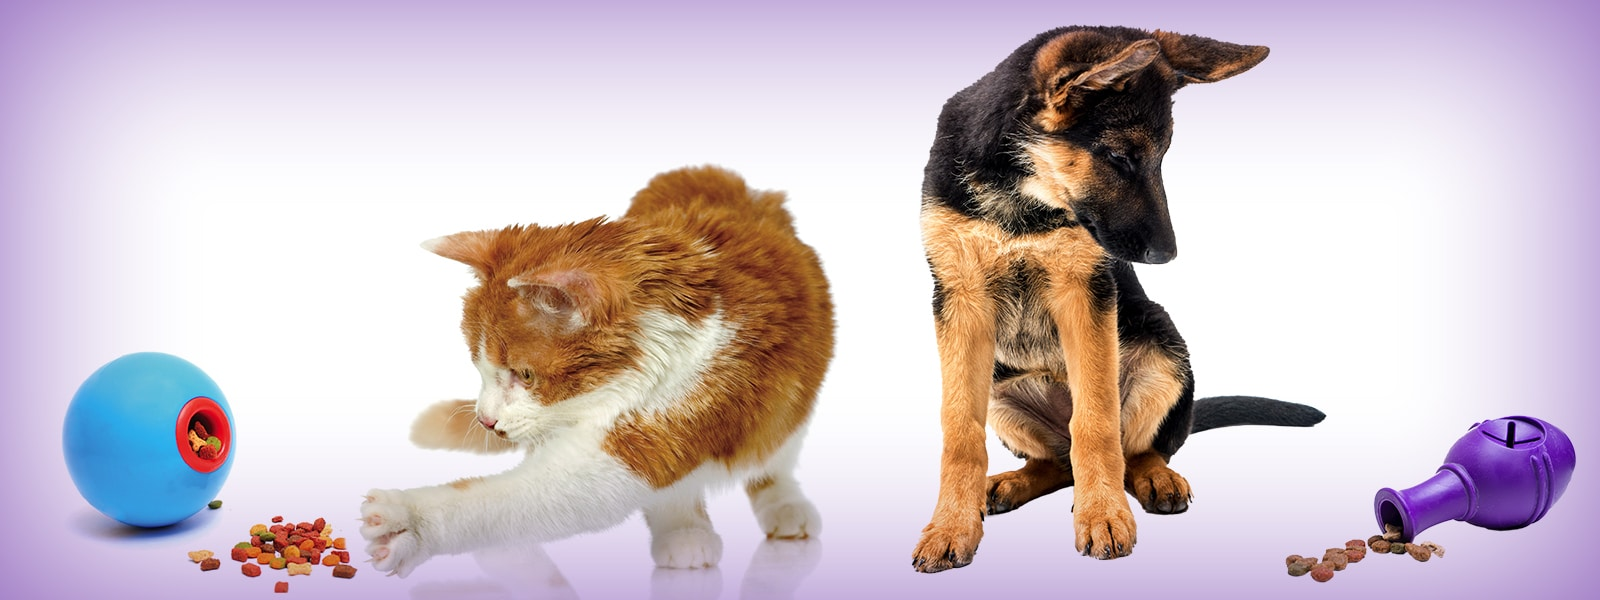 Feeding Puzzles for Dogs and Cats Help Boost Nutrition and Enrichment